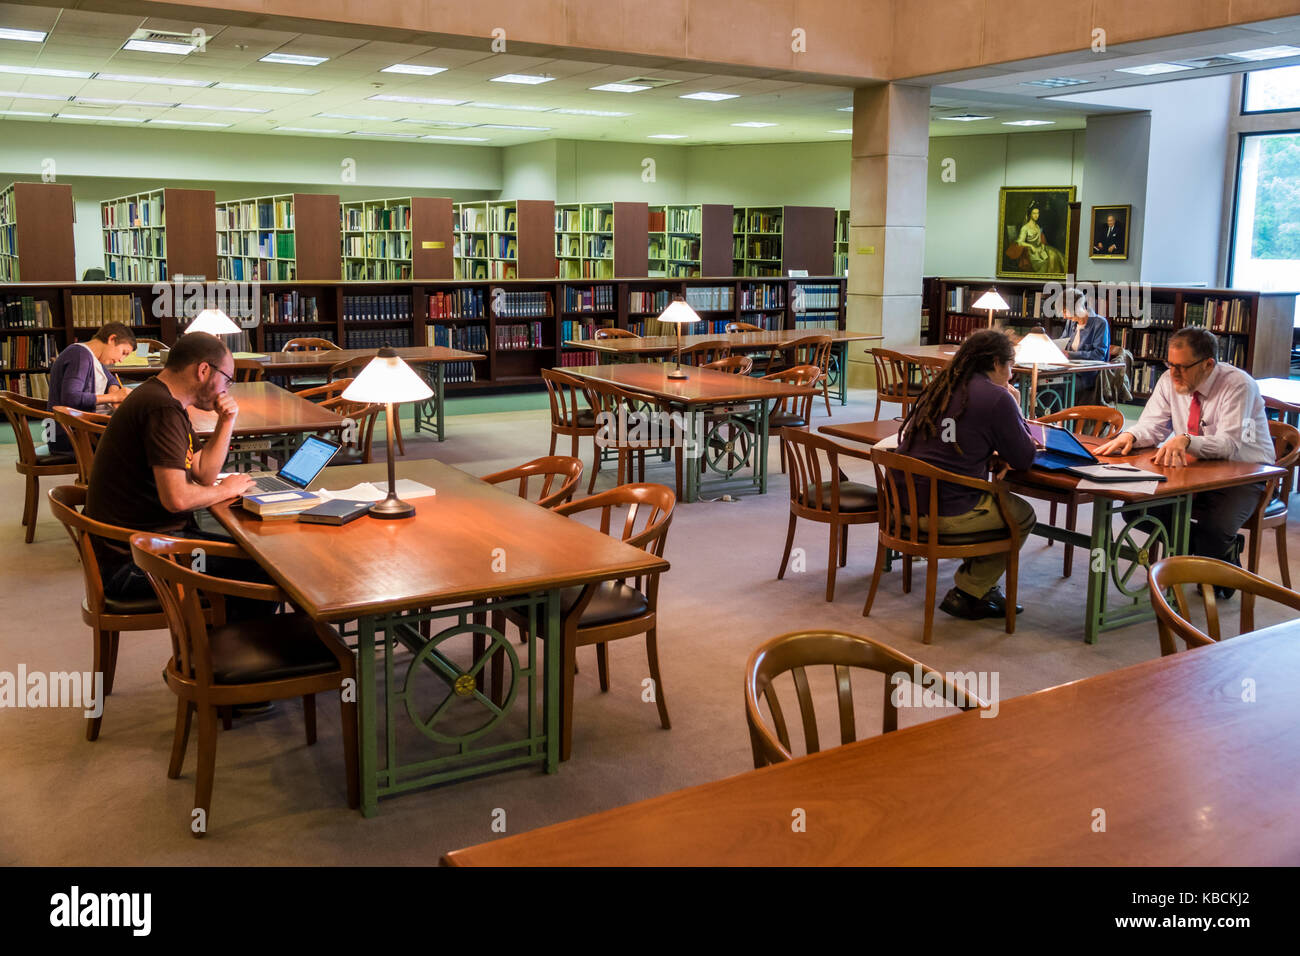 Richmond Virginia Virginia Historical Society museum library reading room interior tables - Stock Image